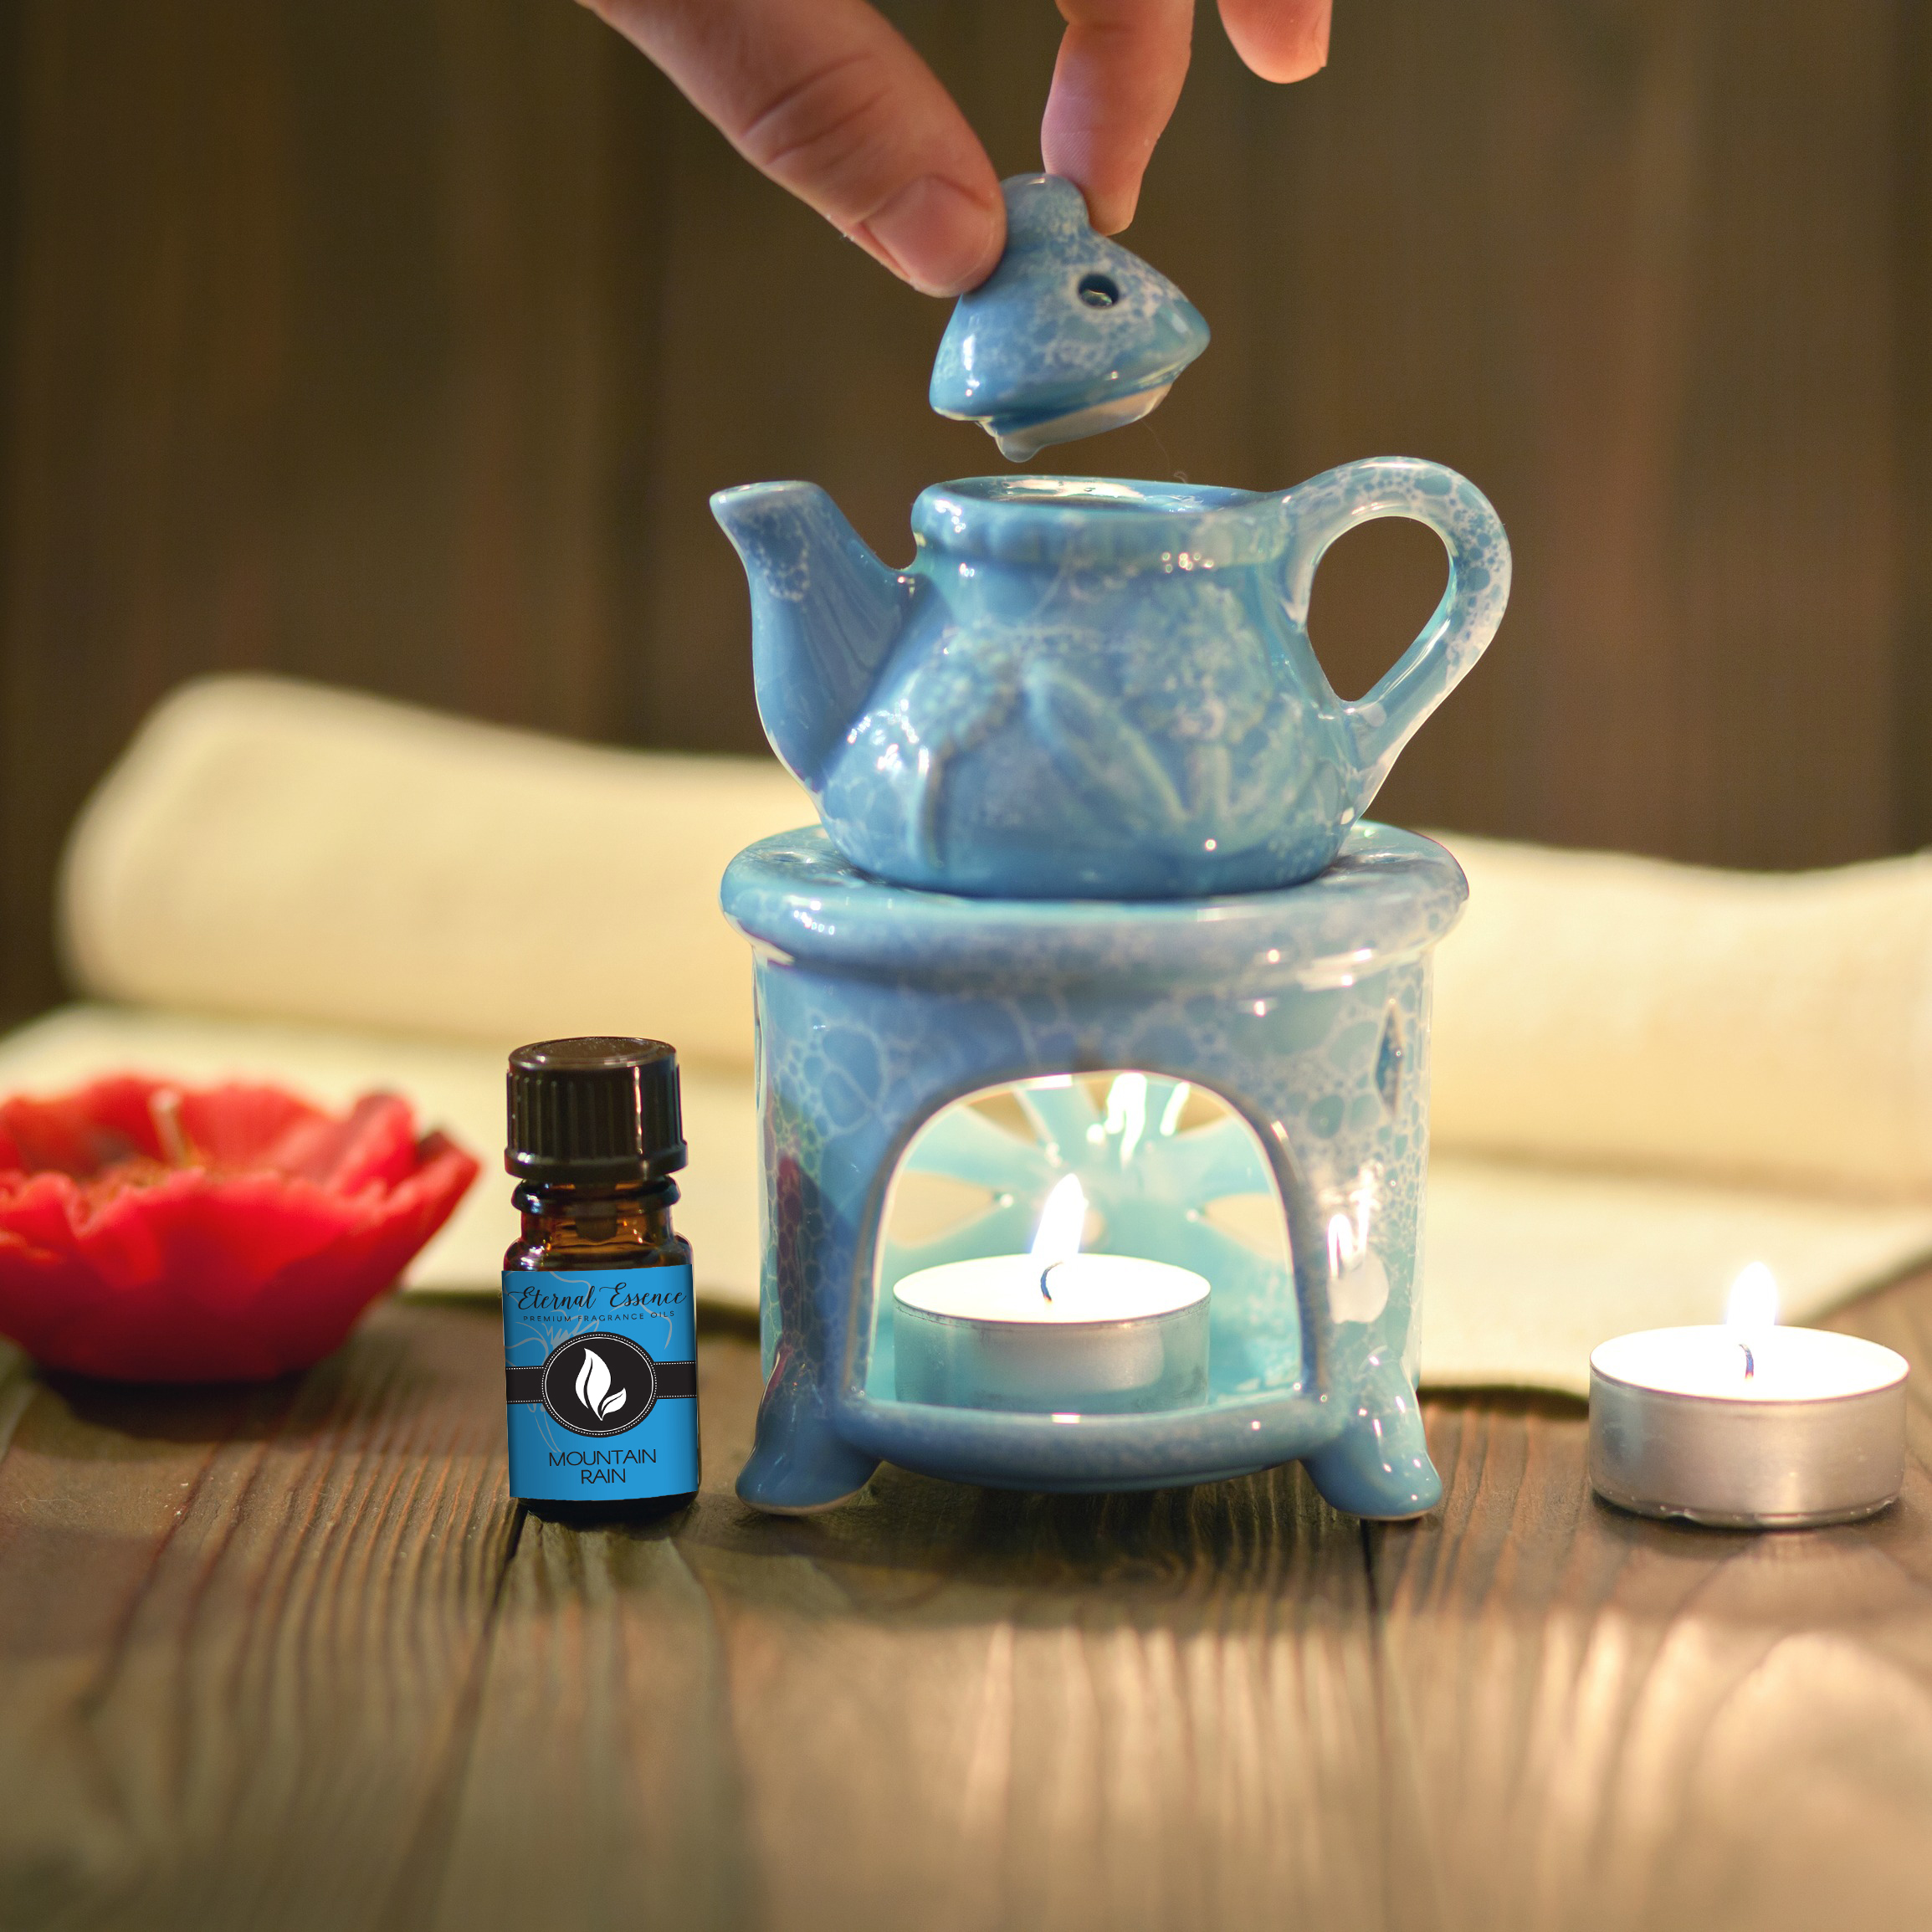 Oil Burners for Fragrance